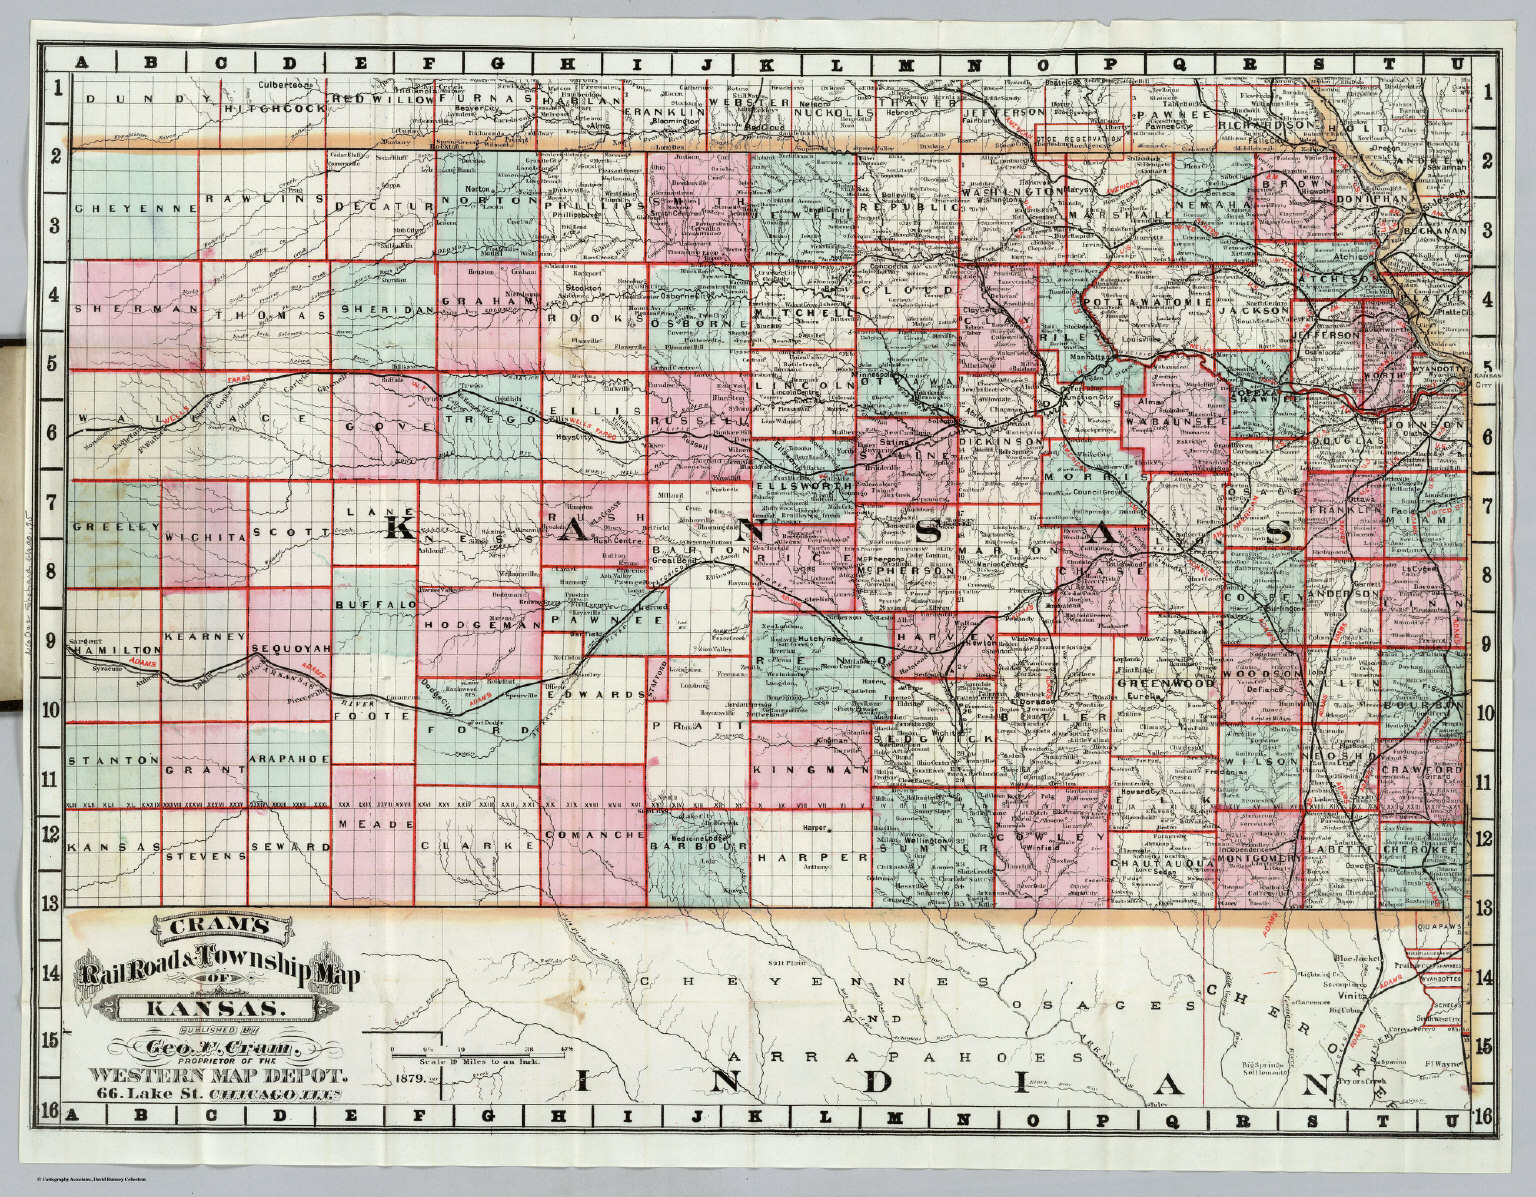 Rail Road Township Map Of Kansas David Rumsey Historical Map - Road map of kansas